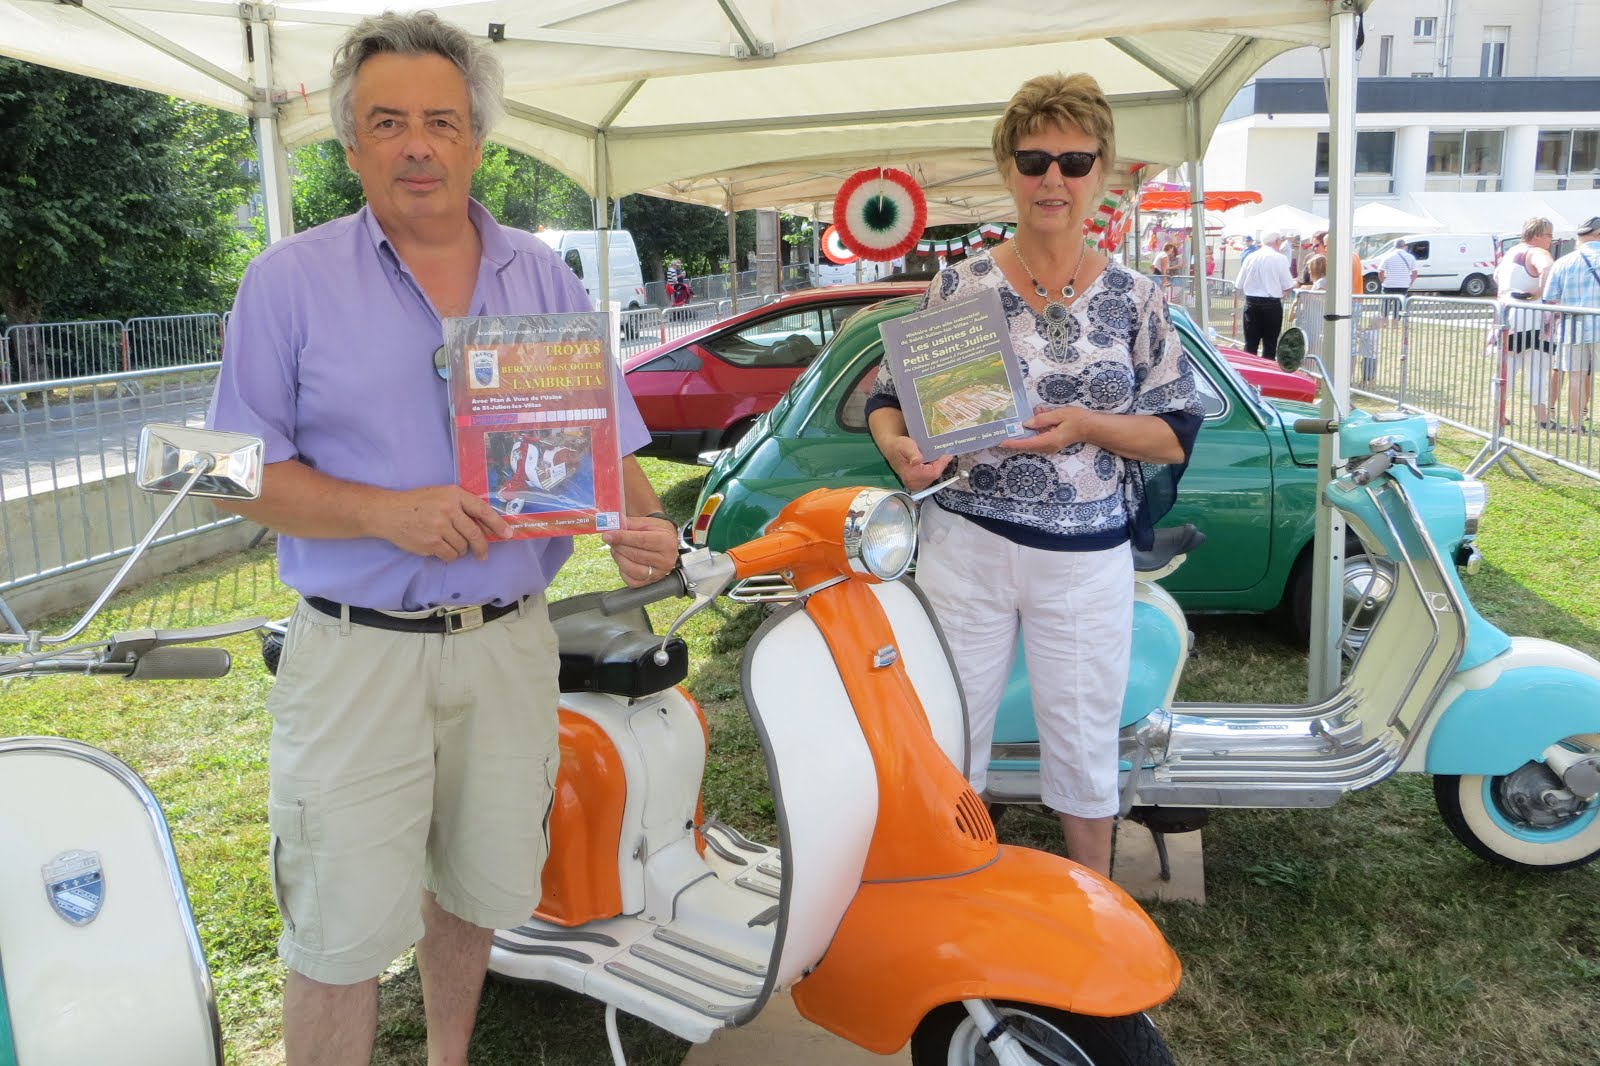 Amateurs de Lambretta